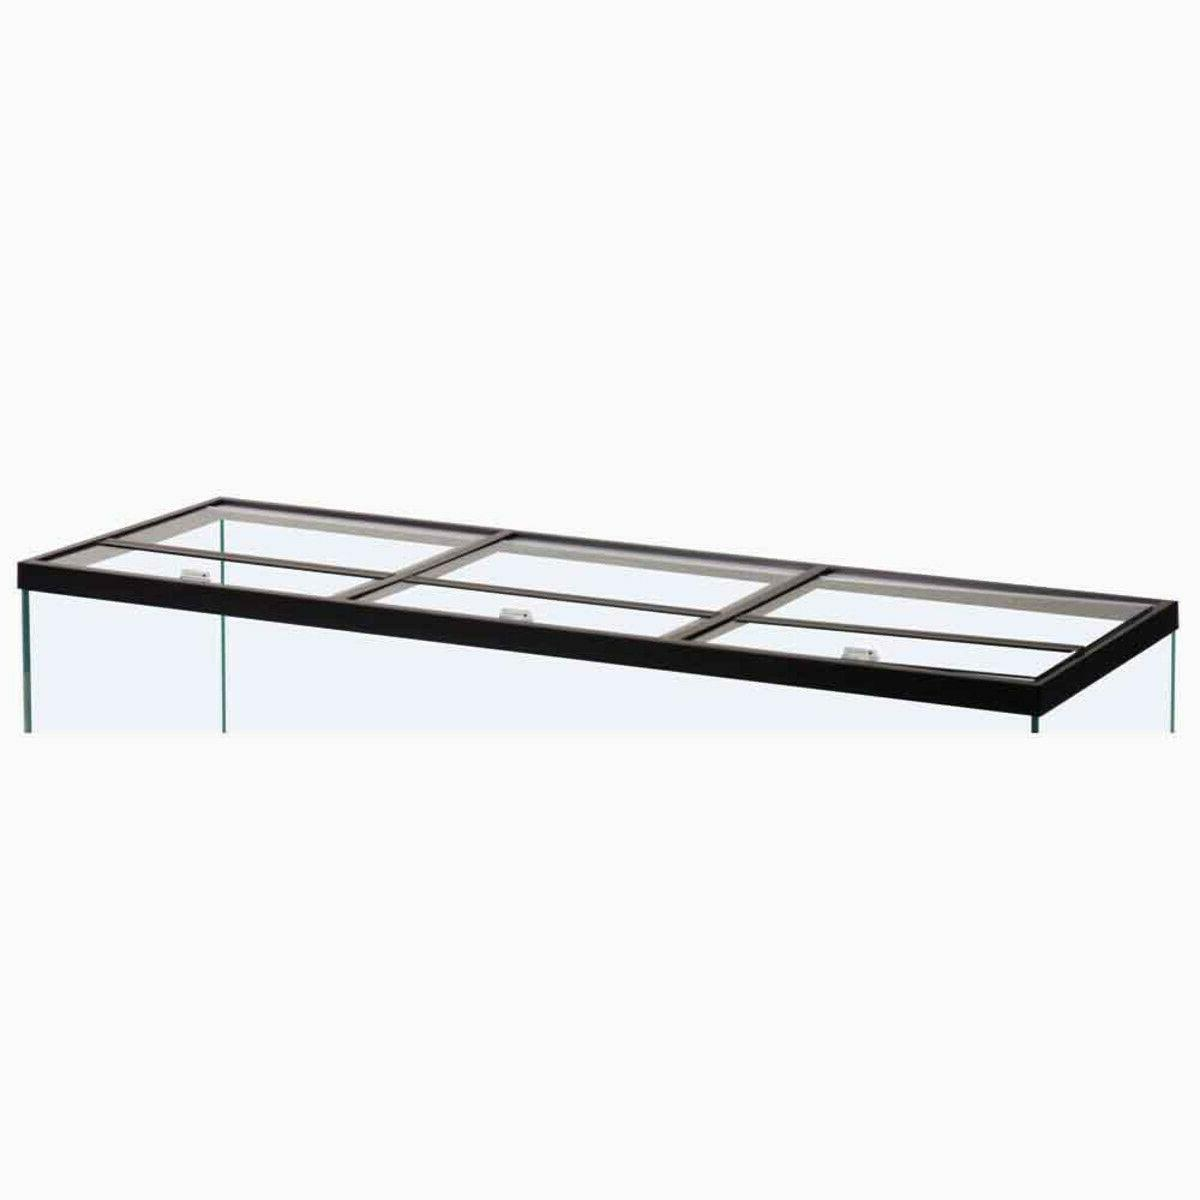 Glass Canopy For 125 150 Marineland Perfecto Aquarium Size